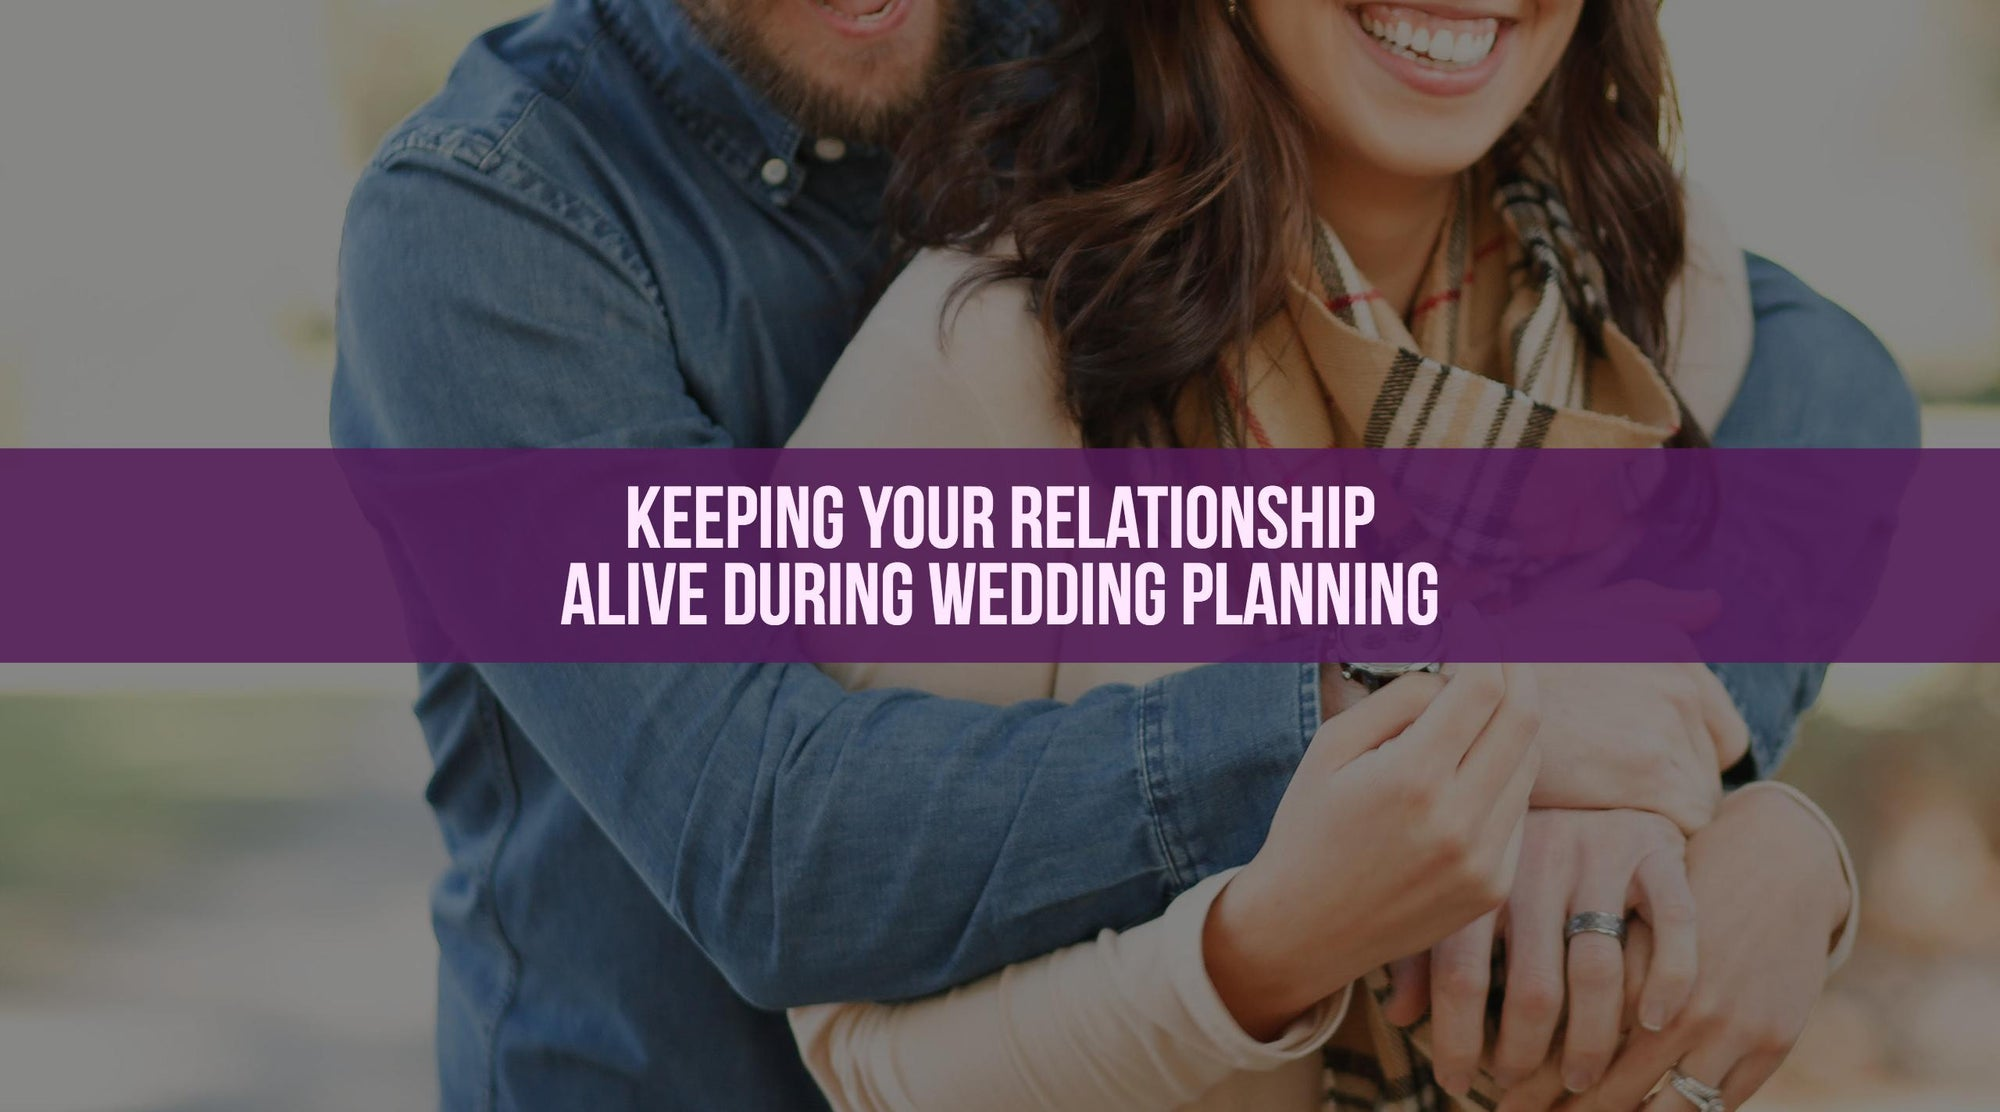 Keeping Your Relationship Alive During Wedding Planning